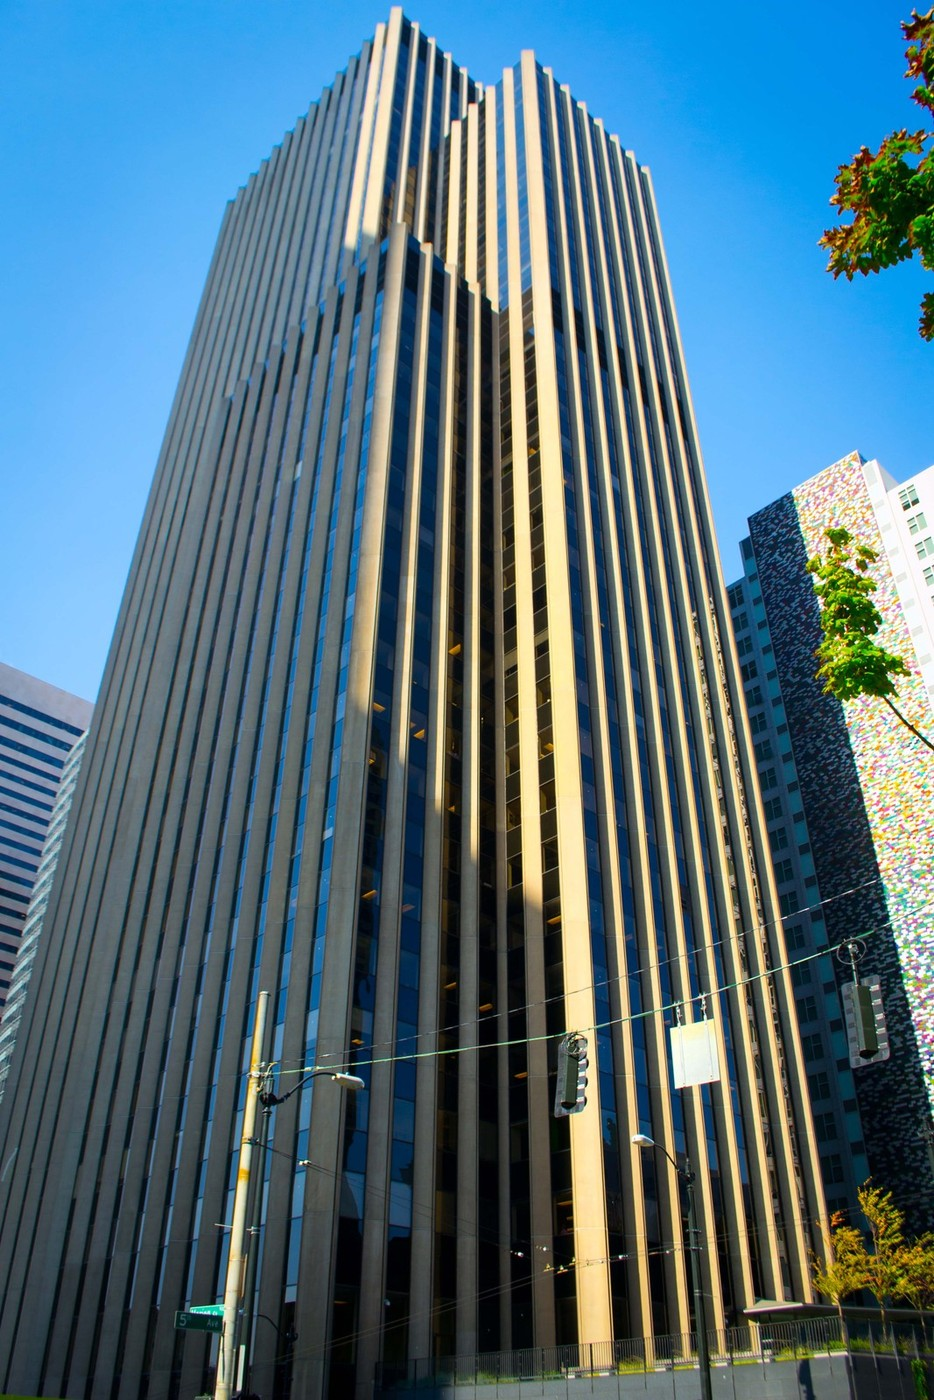 901 fifth avenue comercial building